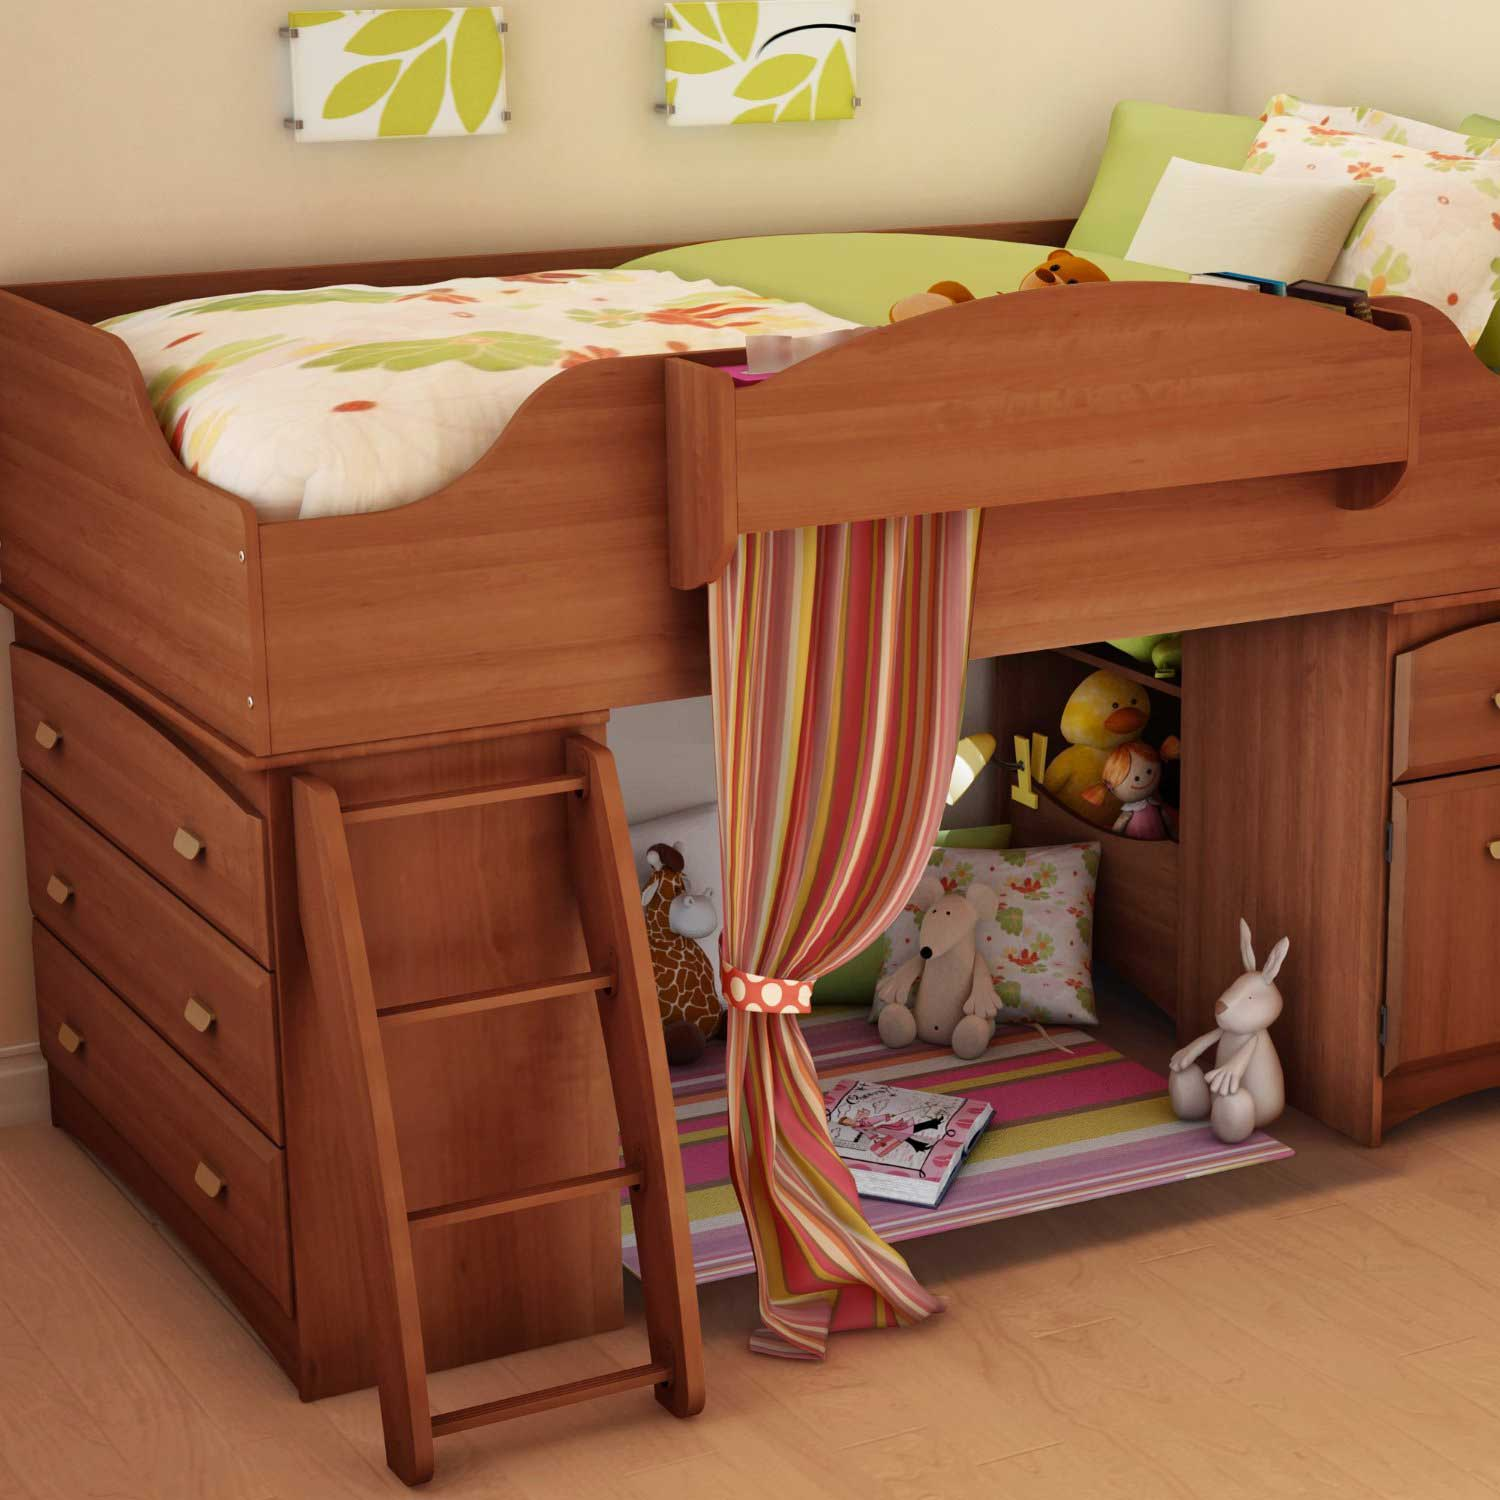 kid bunk beds best 25 best bunk beds ideas on pinterest bunk beds cool bunk bed designskid bunk beds bunk beds ikeacool